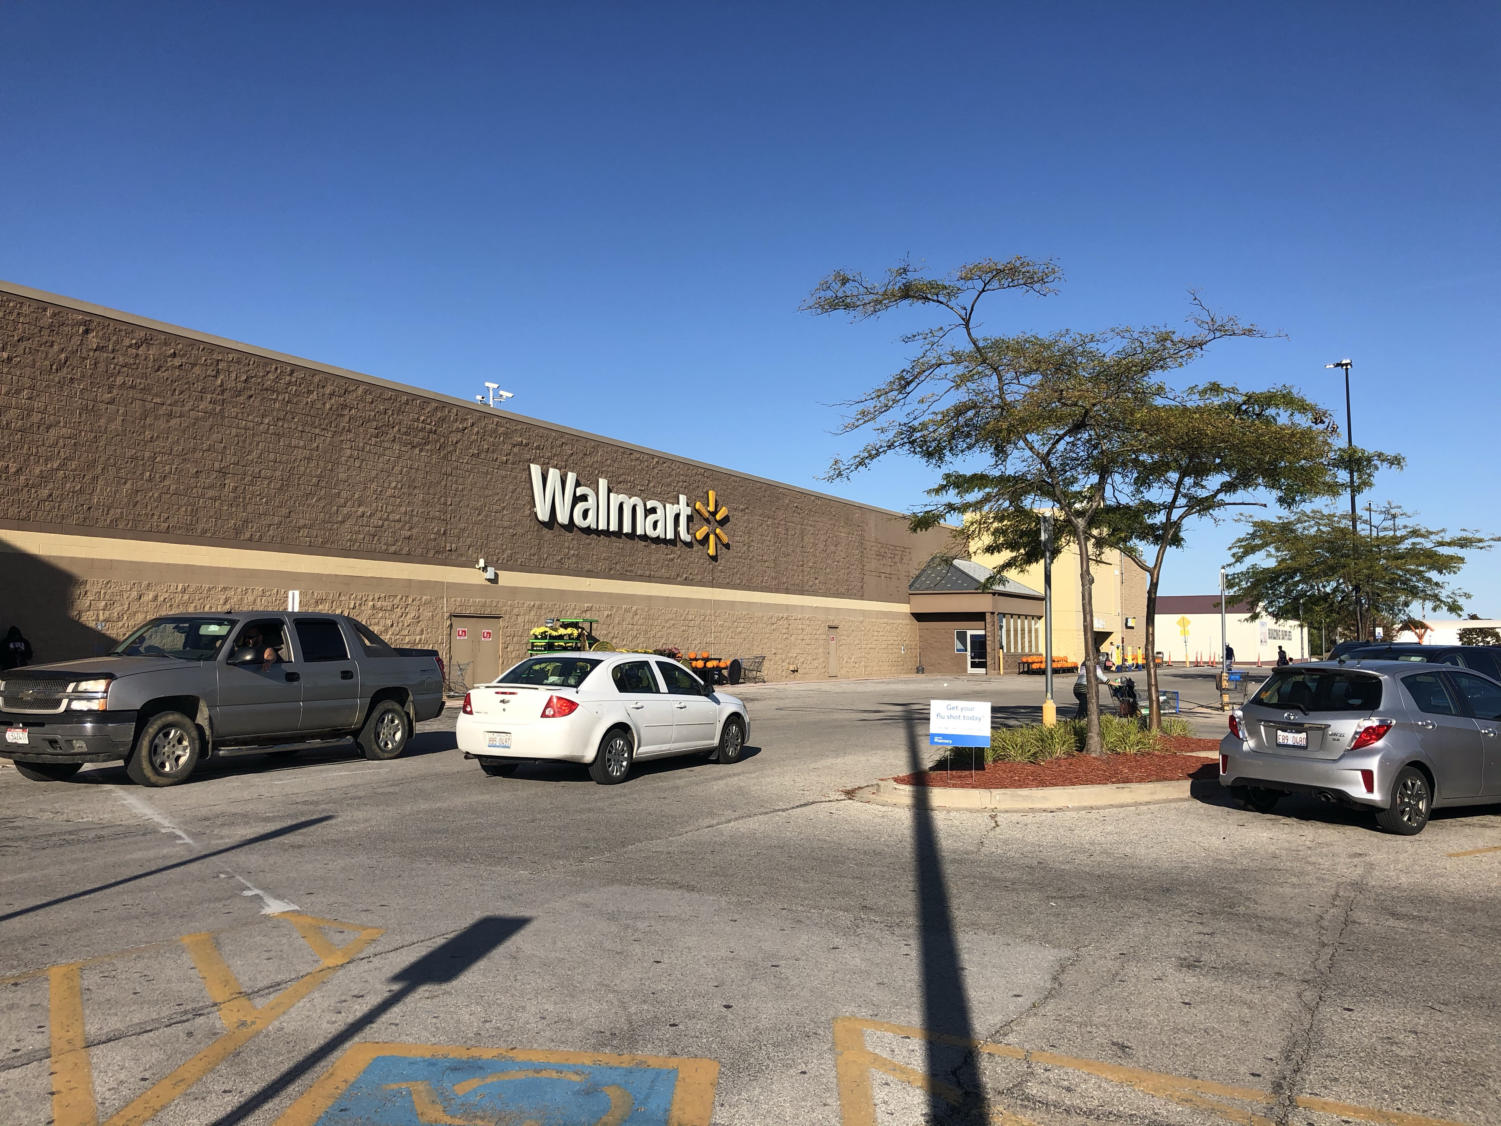 Macomb Police responded to an emergency call at Walmart in Macomb to reports of a man wiedling a knife at an employee early Thursday morning.